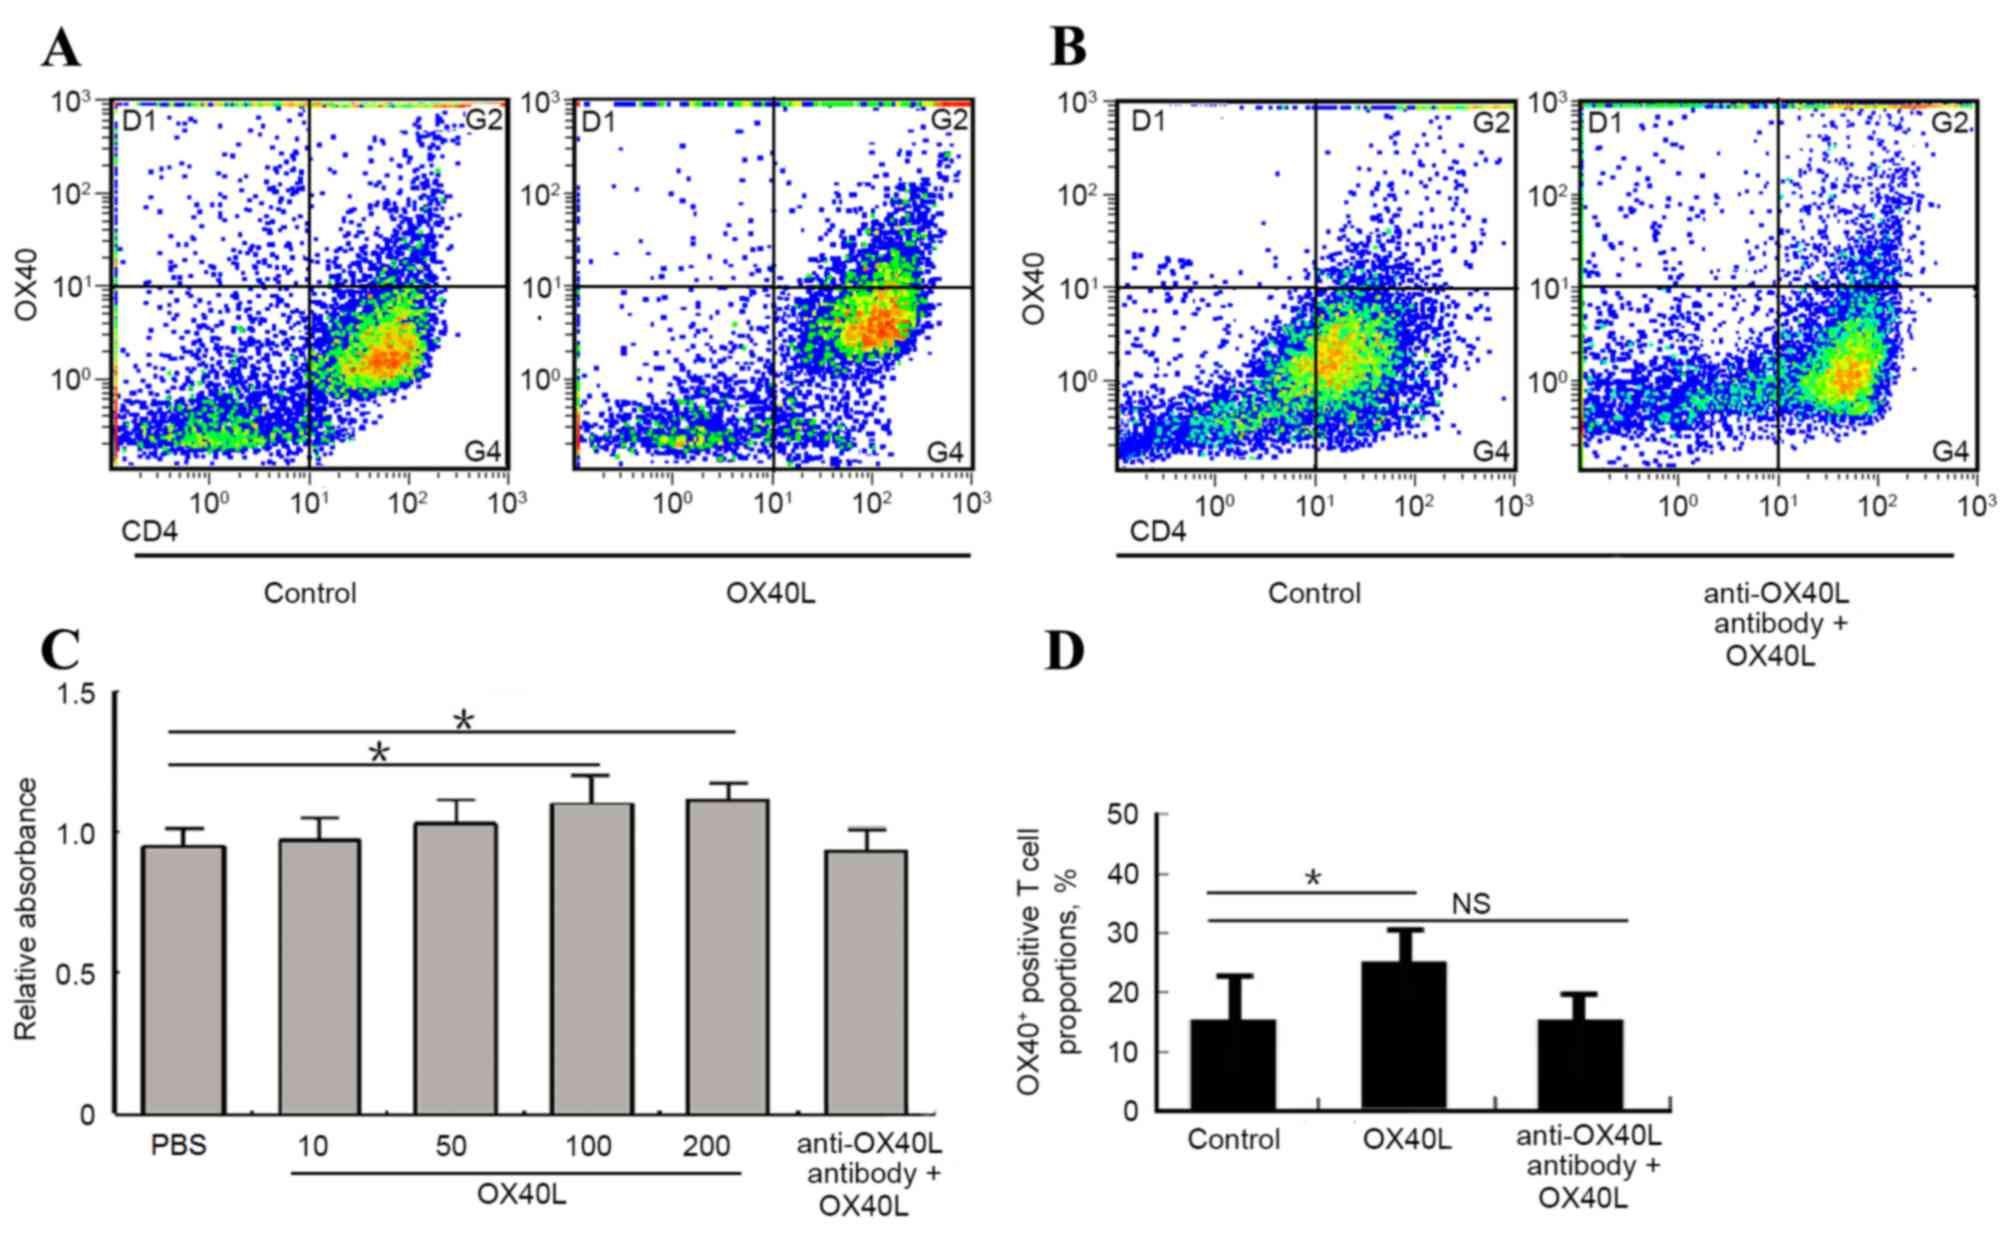 Crucial role of OX40/OX40L signaling in a murine model of asthma